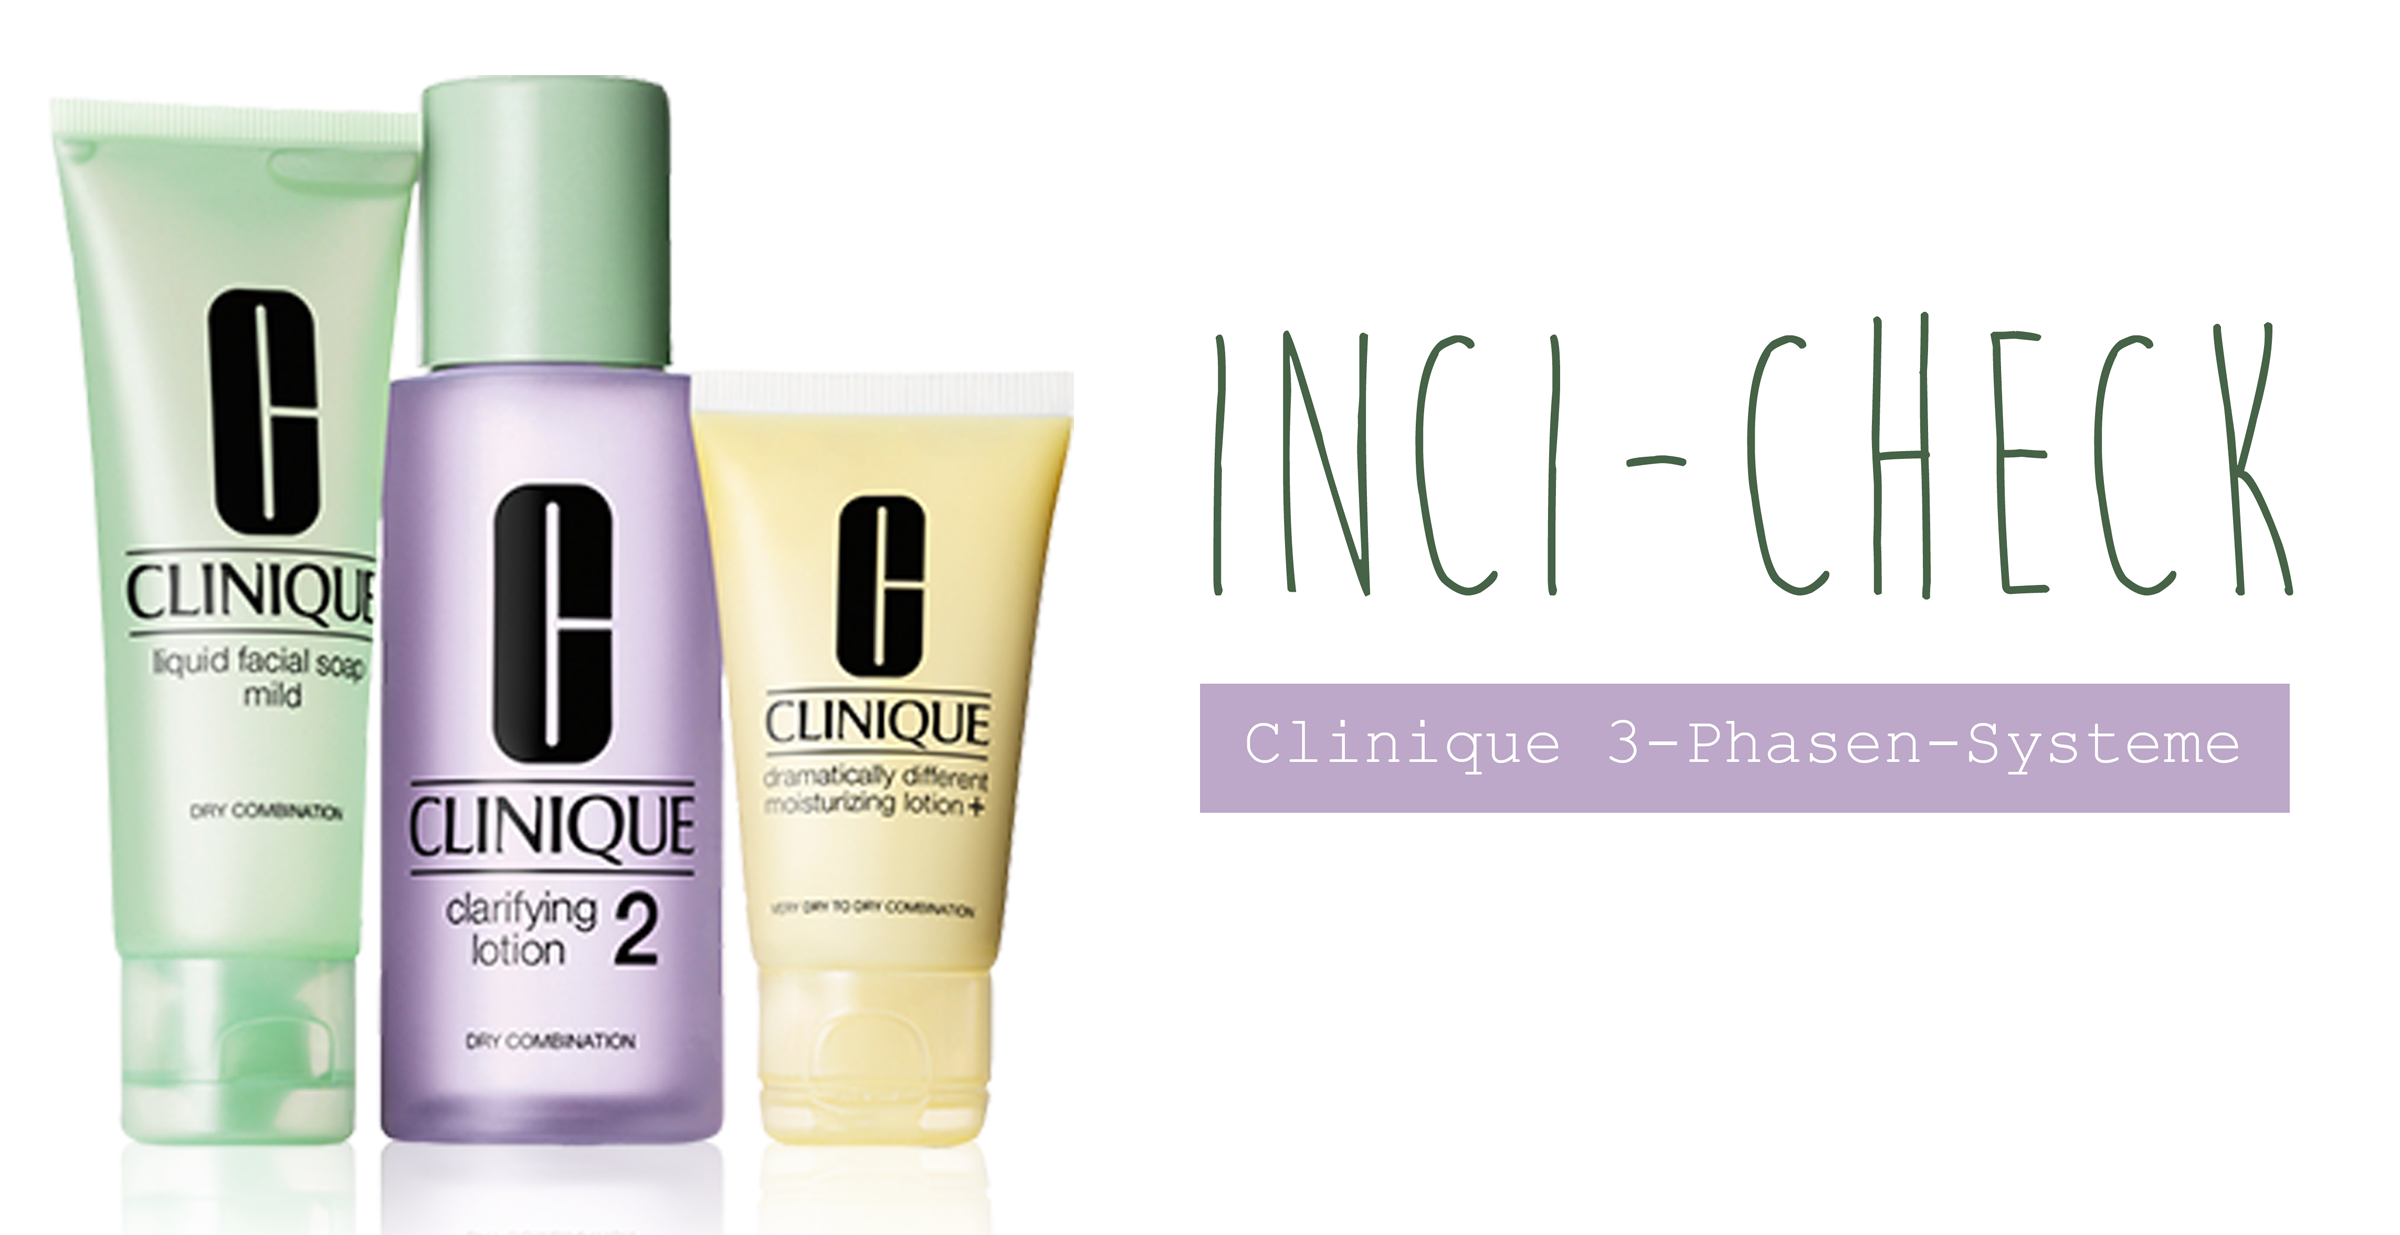 inci_check_clinique